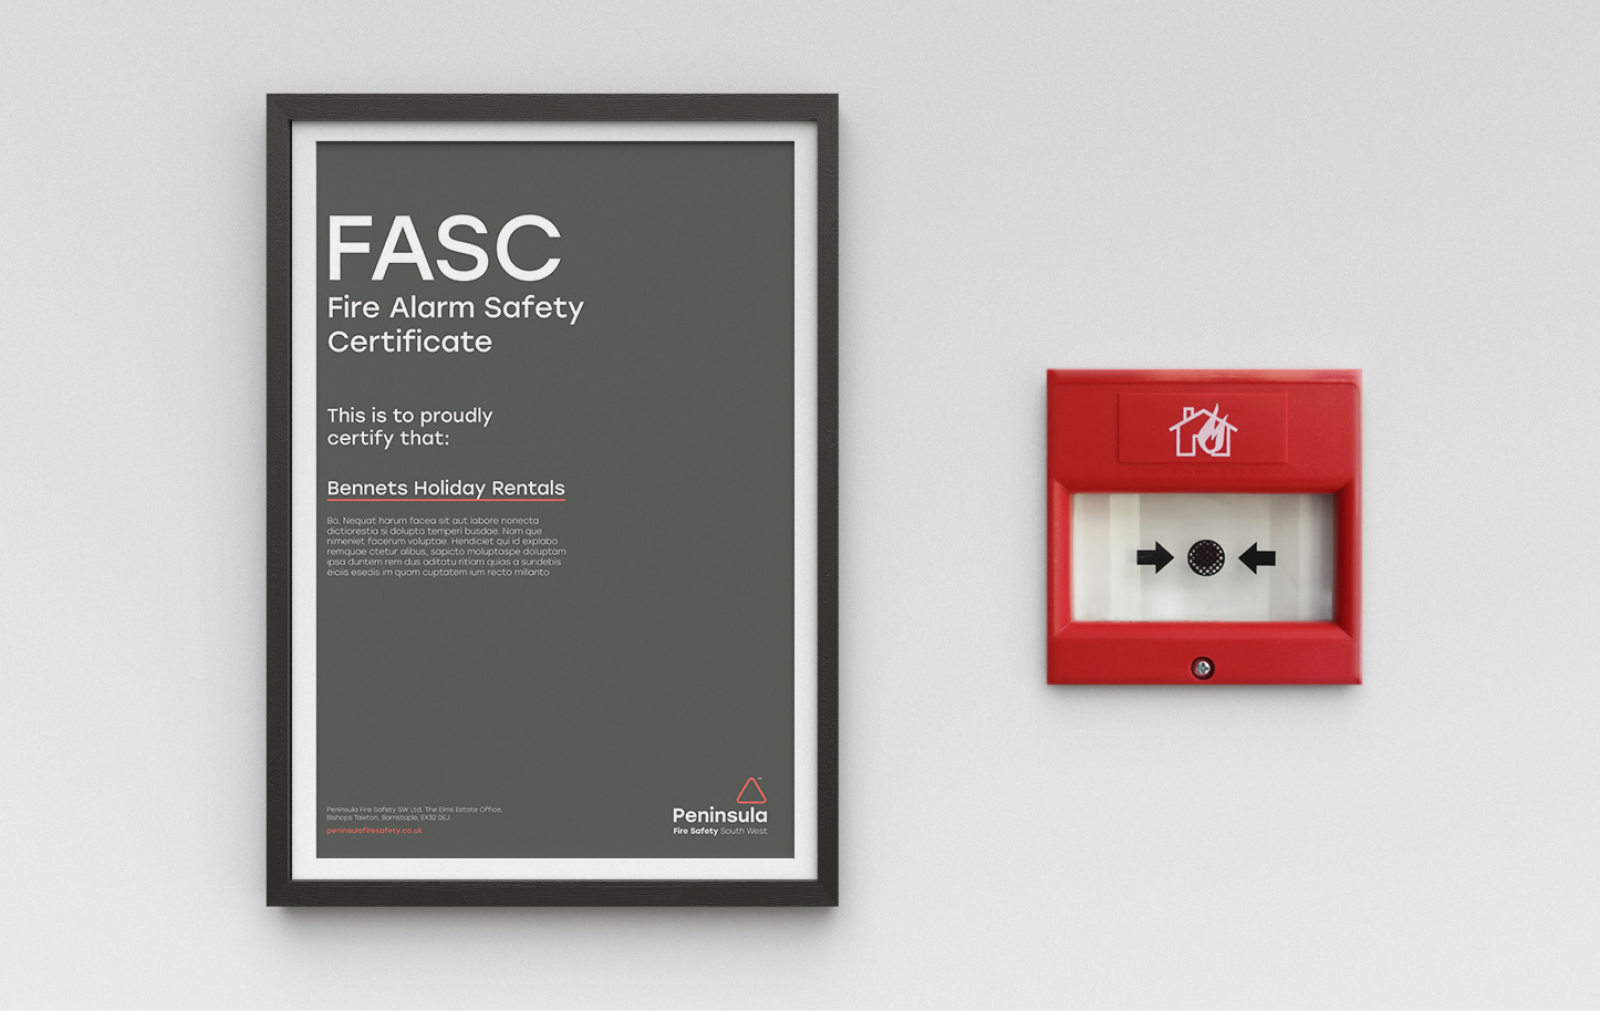 fire safety company brand design